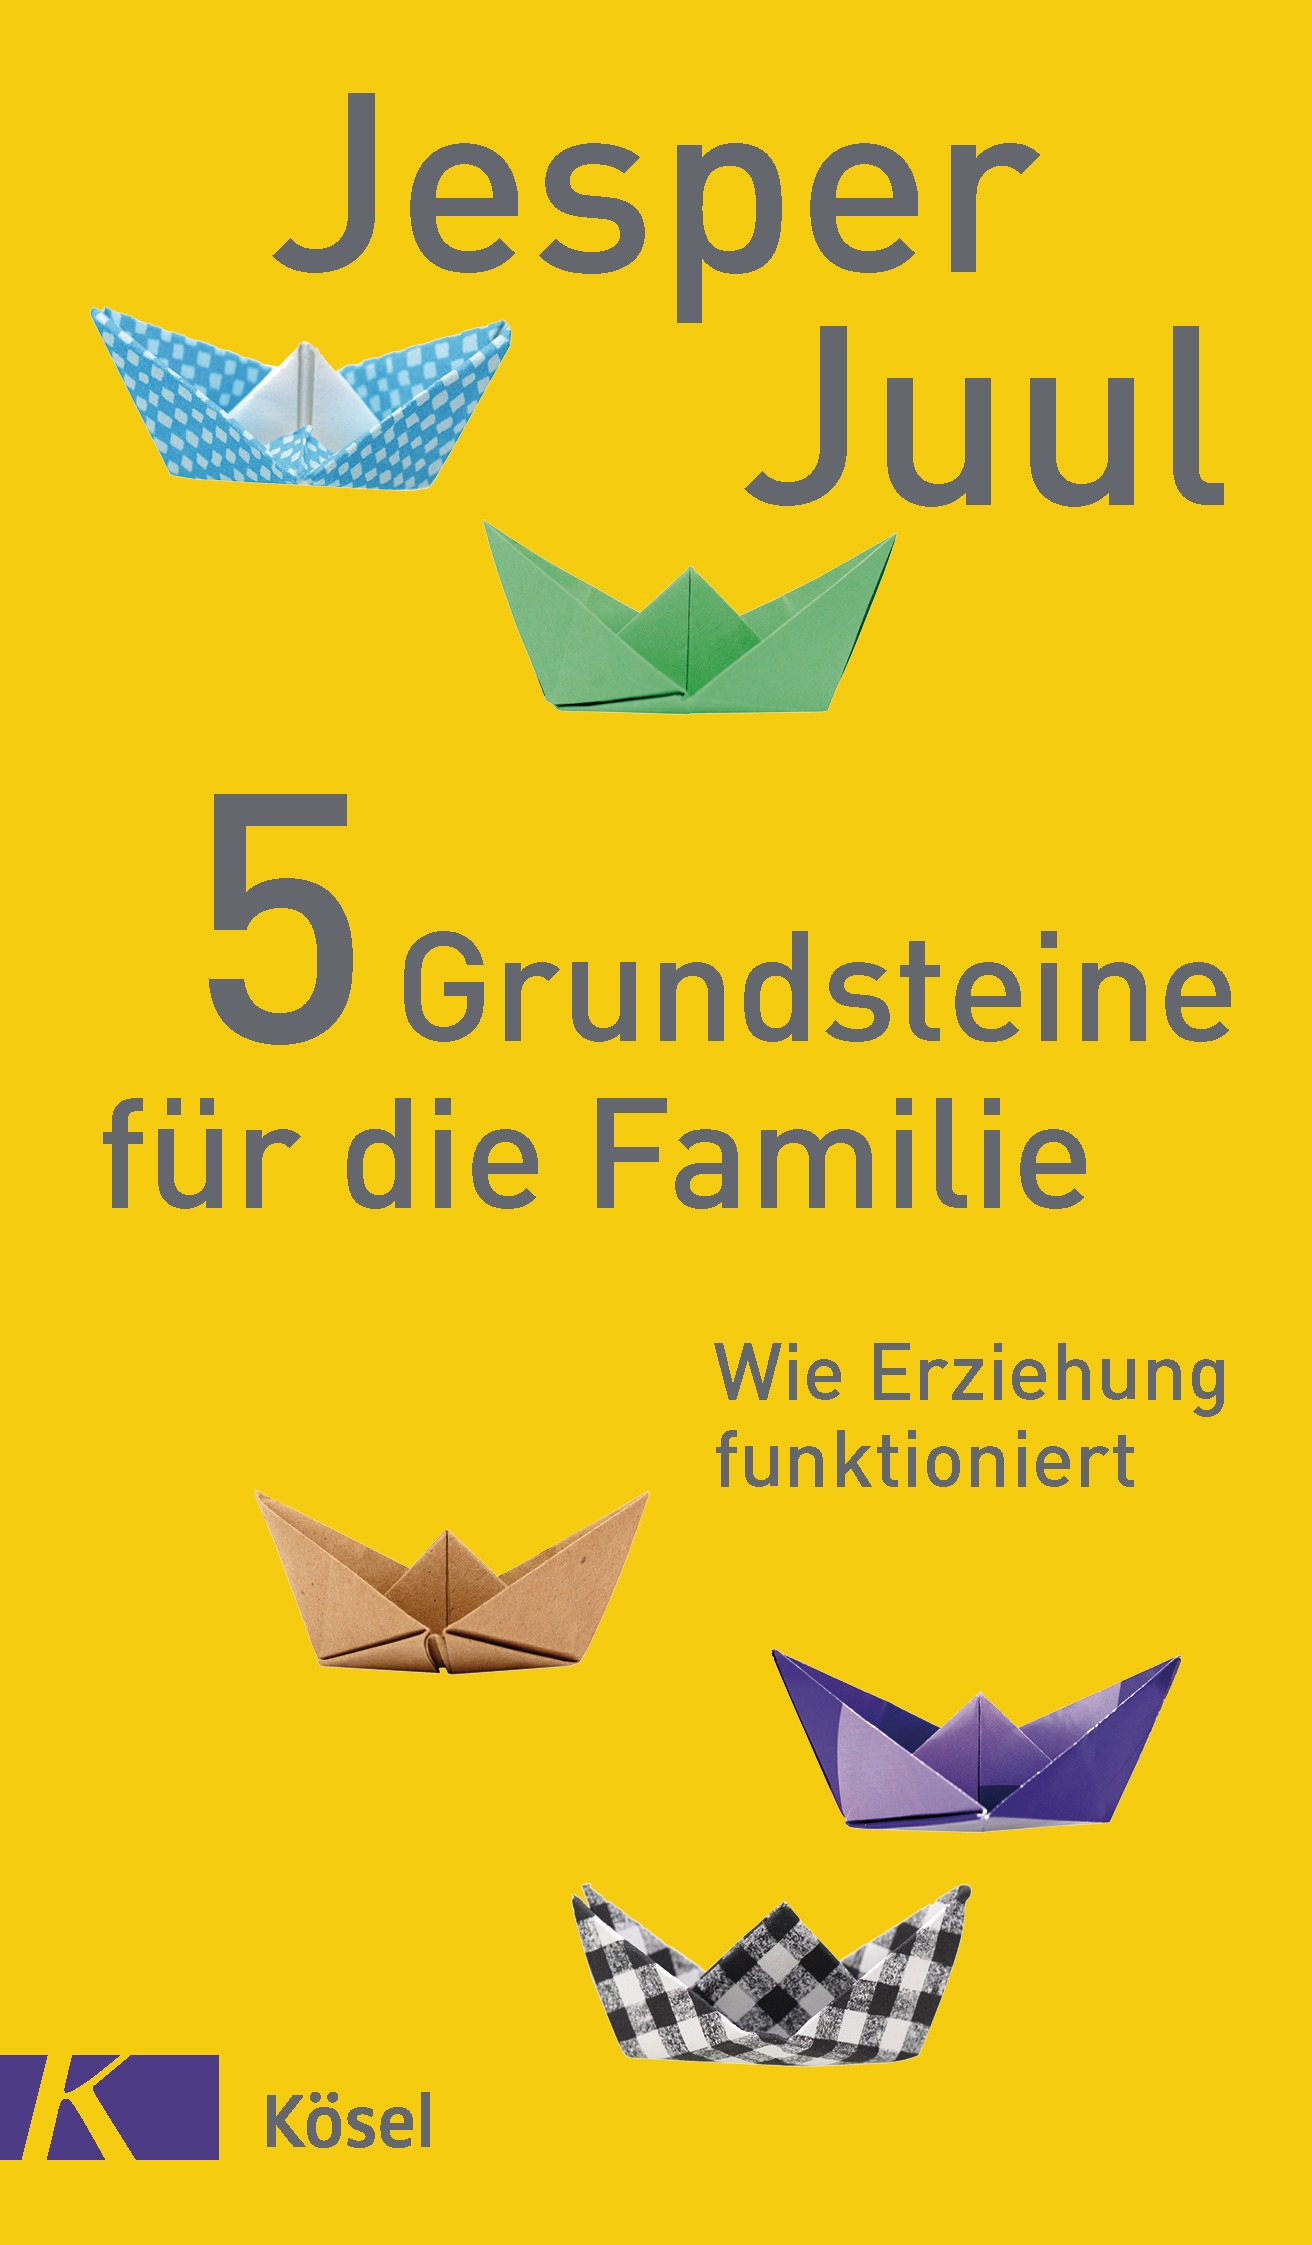 jesper juul 5 grundsteine f r die familie k sel verlag gebundenes buch. Black Bedroom Furniture Sets. Home Design Ideas